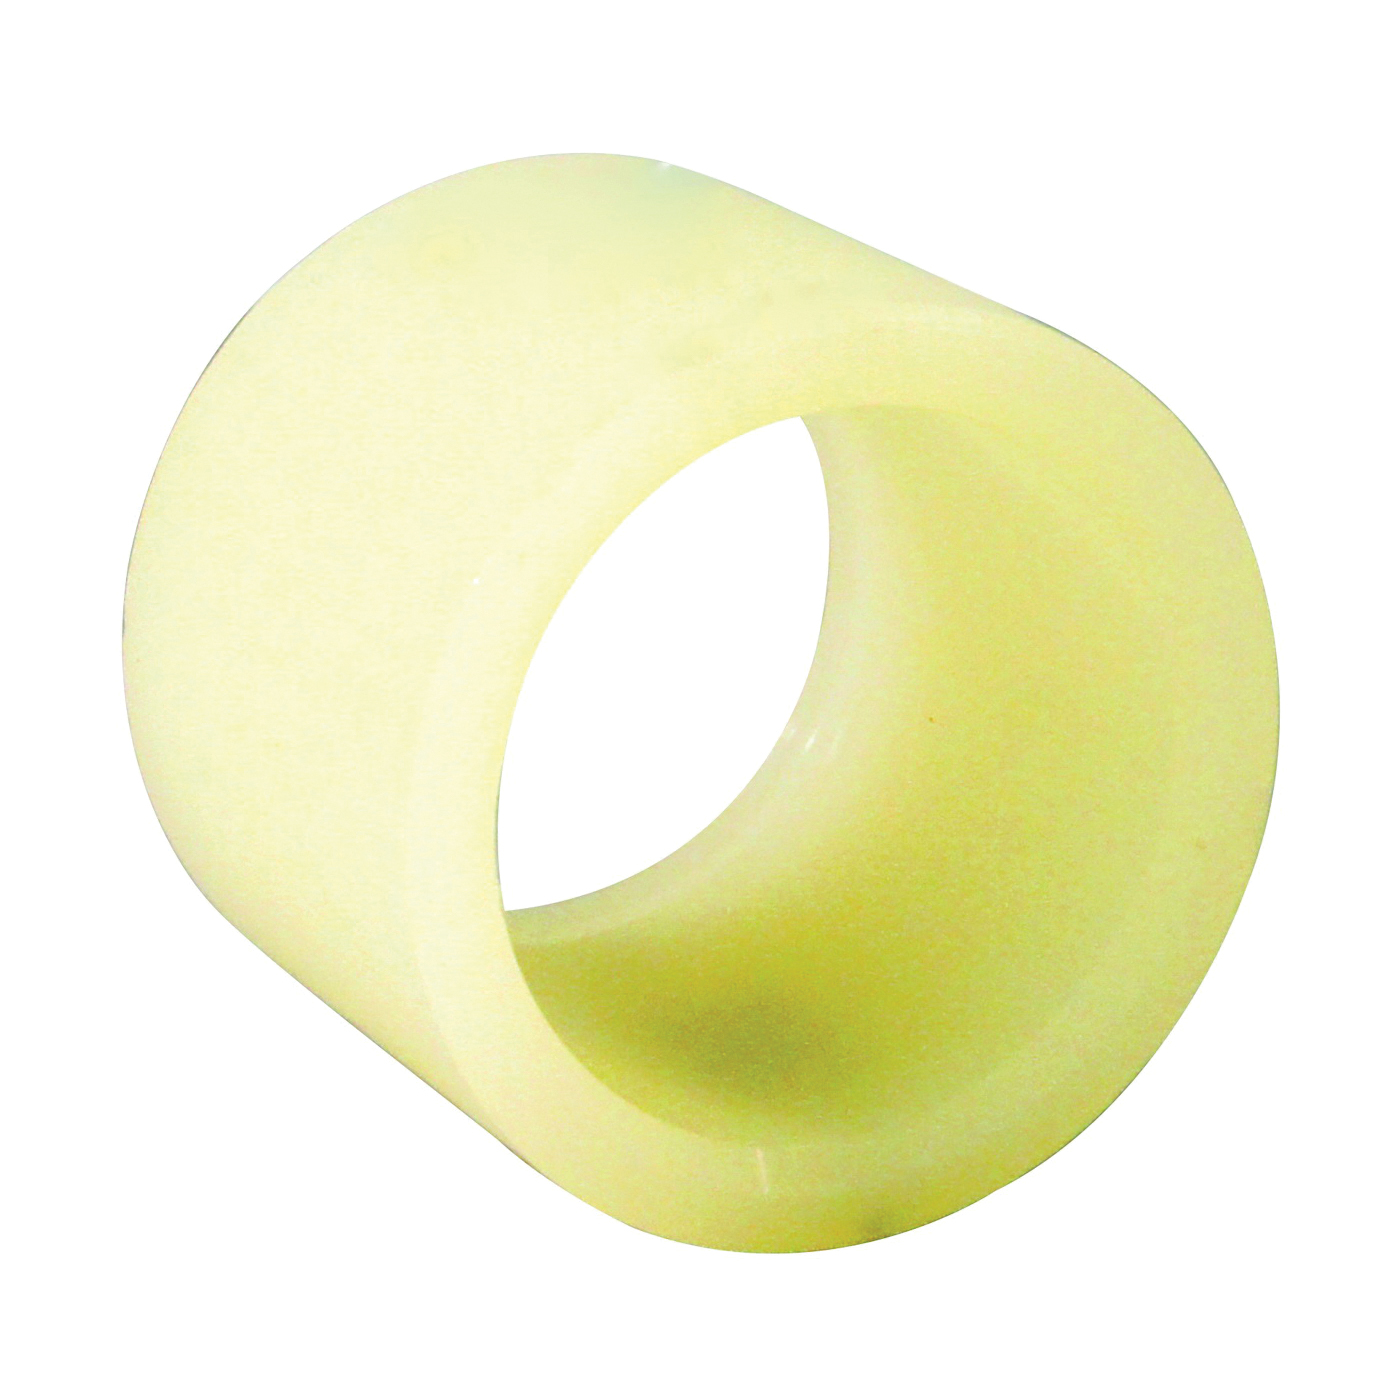 Picture of Apollo ExpansionPEX EPXS3425PK Pipe Sleeve, 3/4 in, Polyethylene, 25, Pack